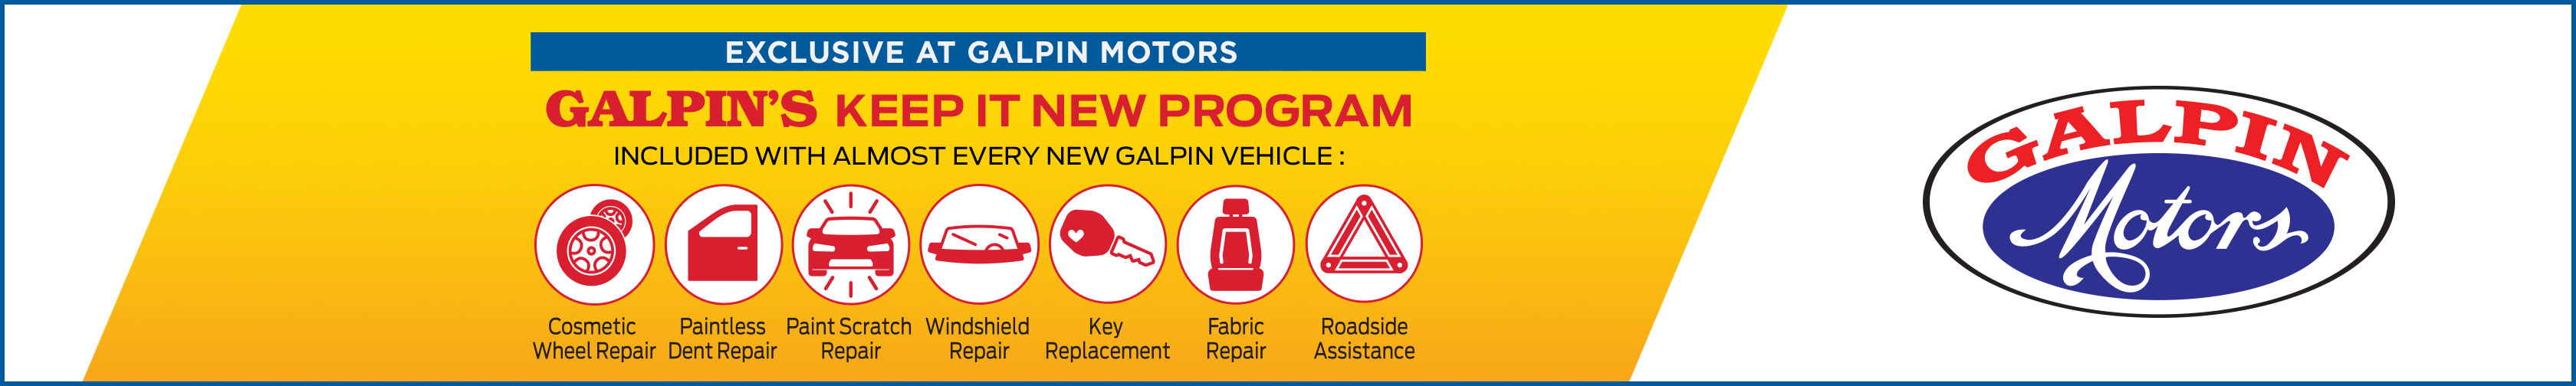 Galpin Motor's keep it new program banner